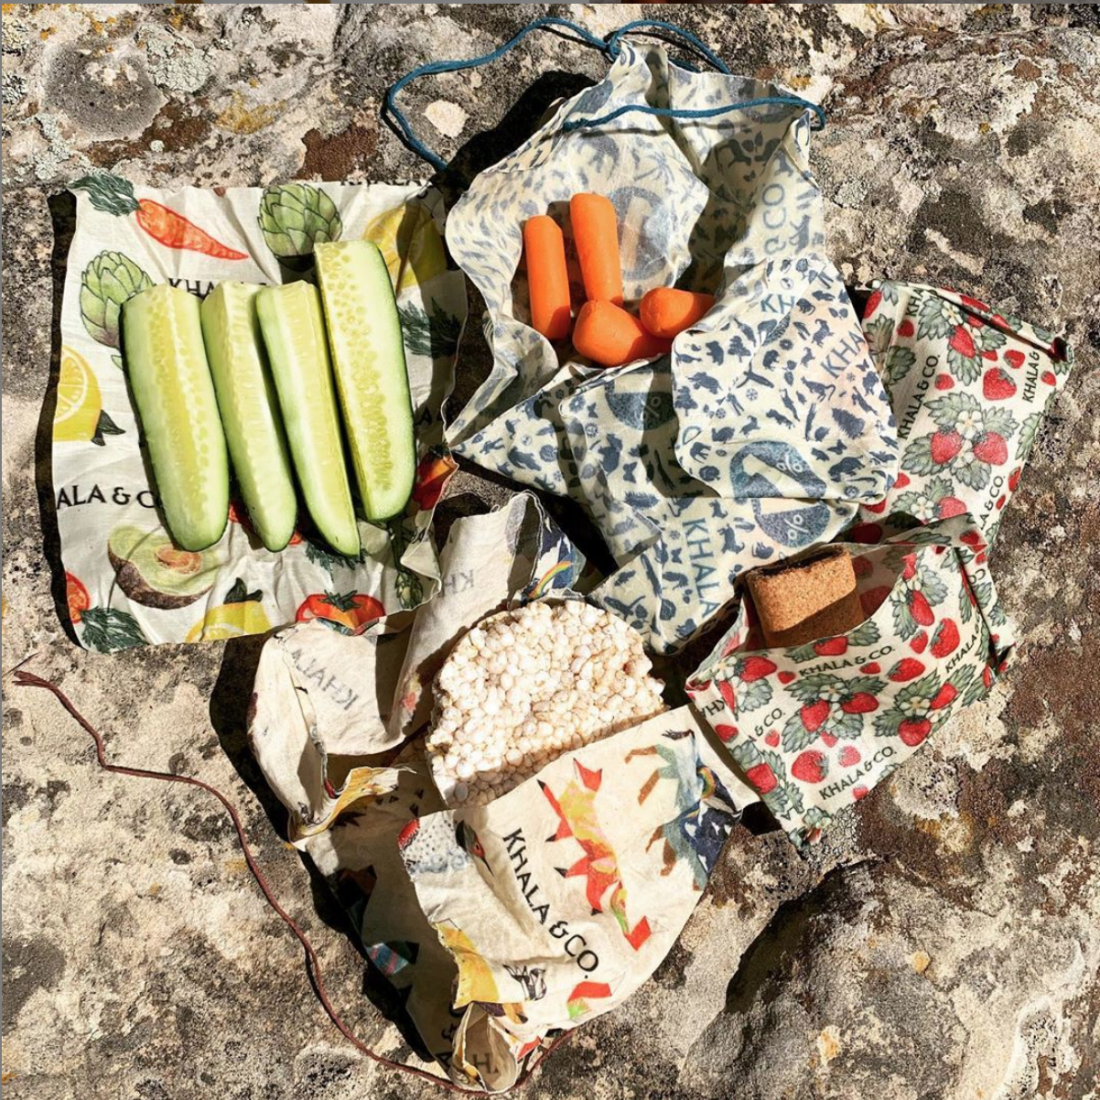 khala cloth beeswax wraps covering food items